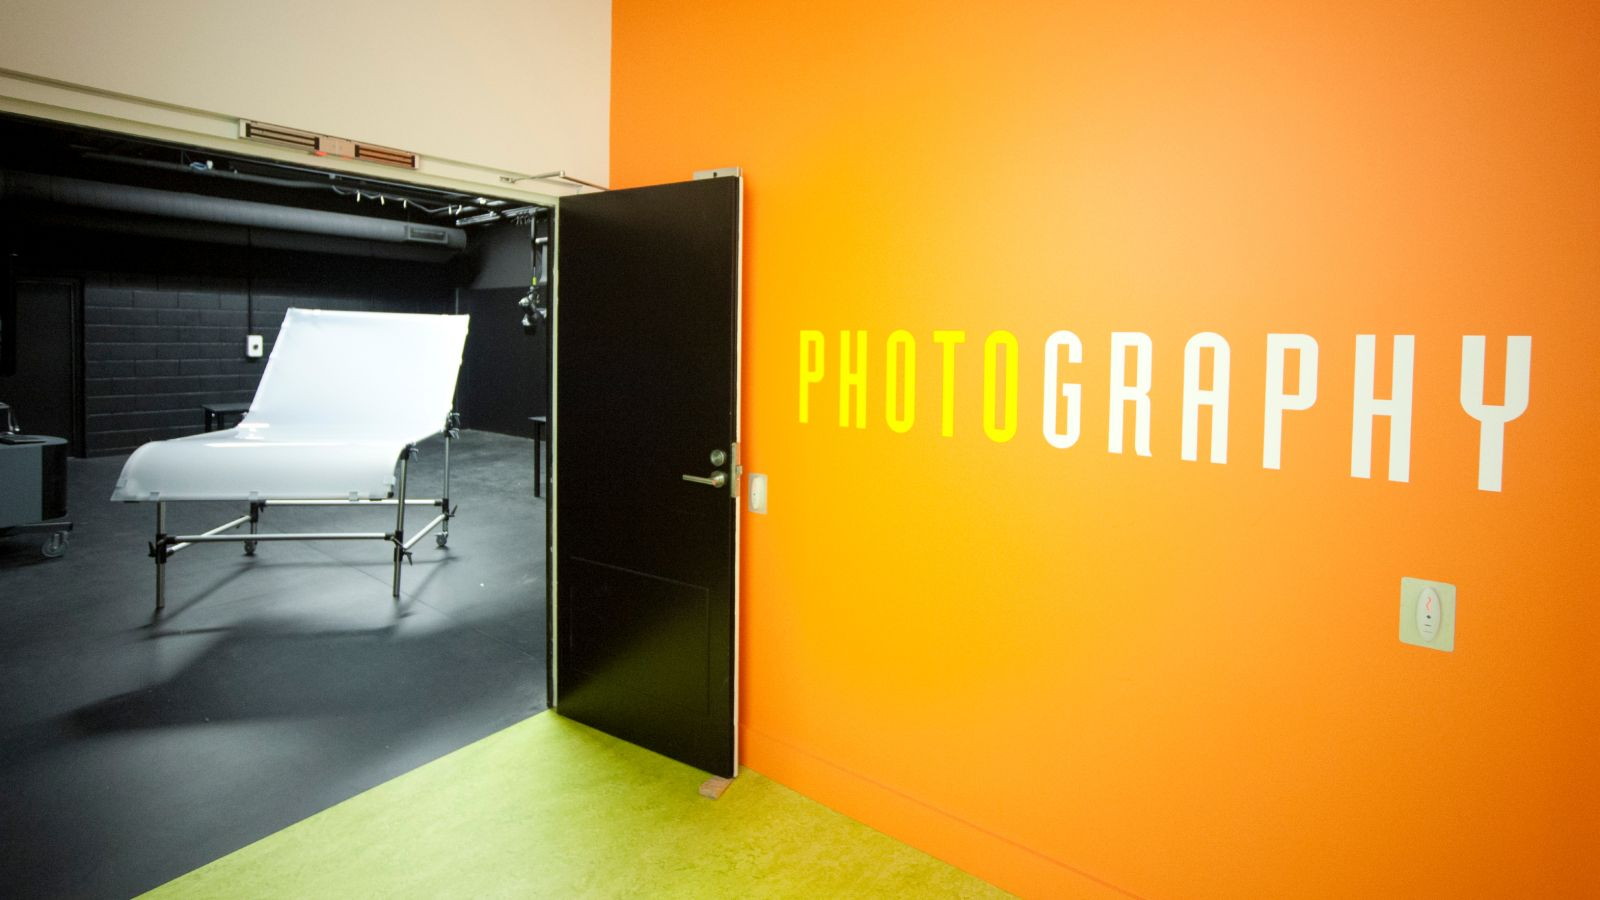 Wellington Faculty of Architecture and Design Innovation photography studio